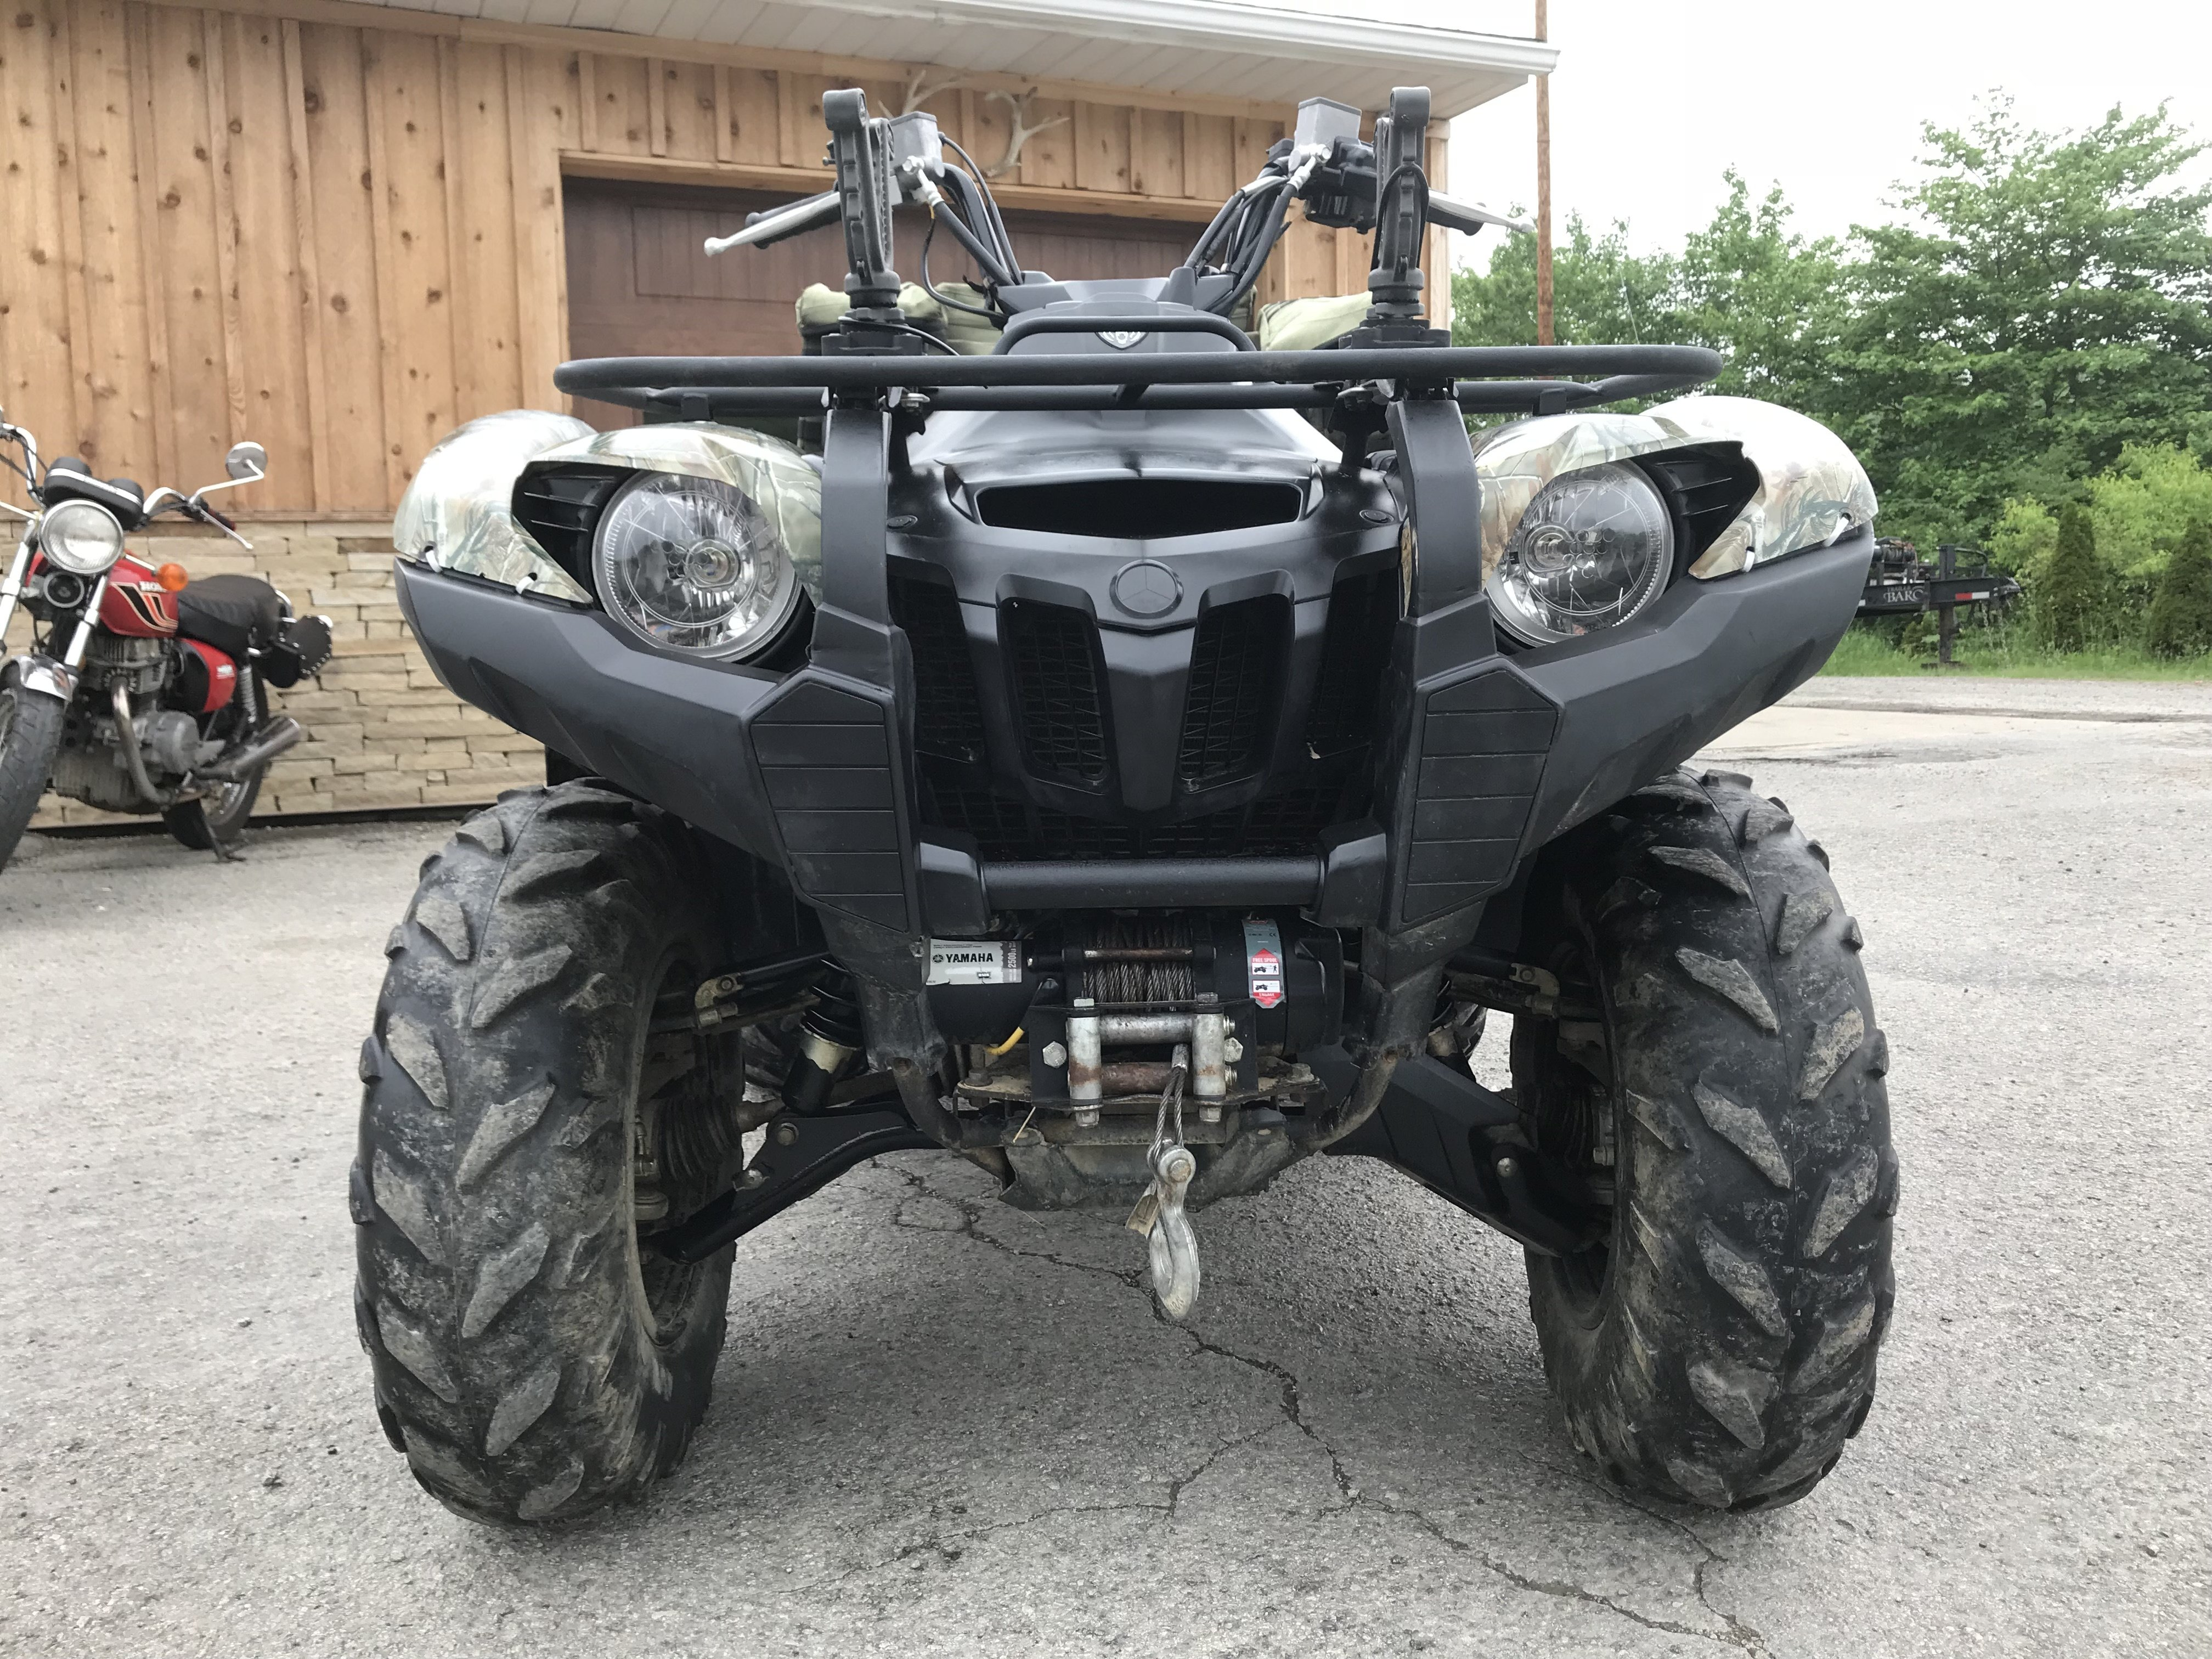 2012 Yamaha Grizzly 700 EPS Camo - One Owner